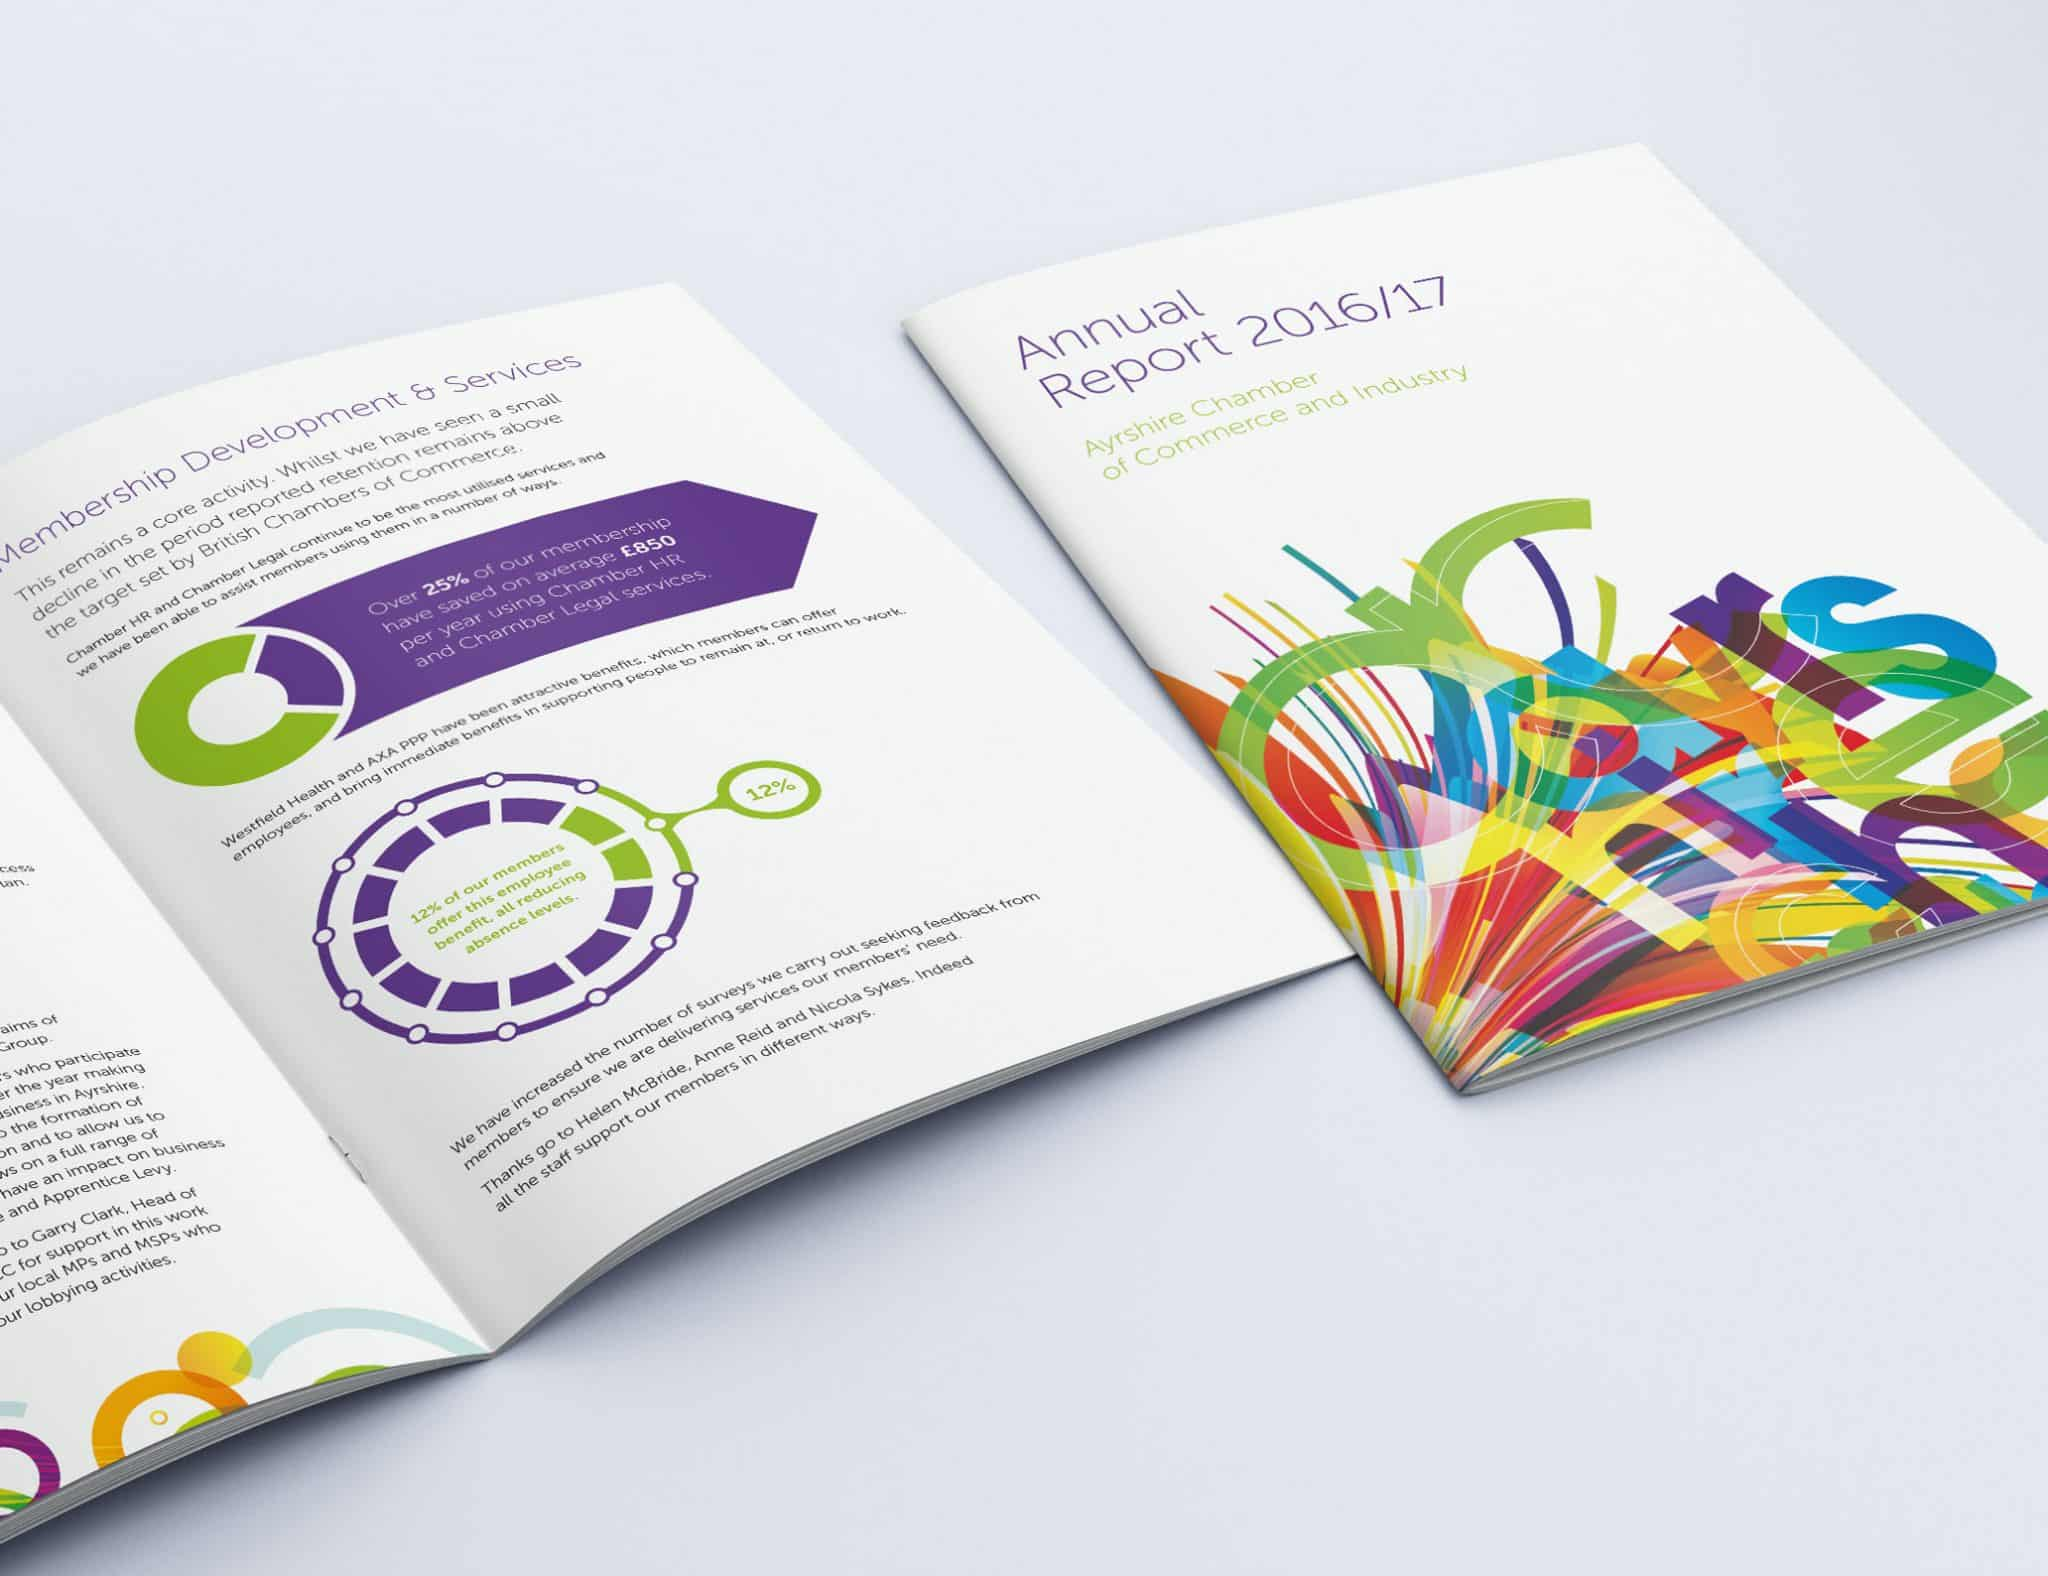 Ayrshire Cahmber Booklet Design